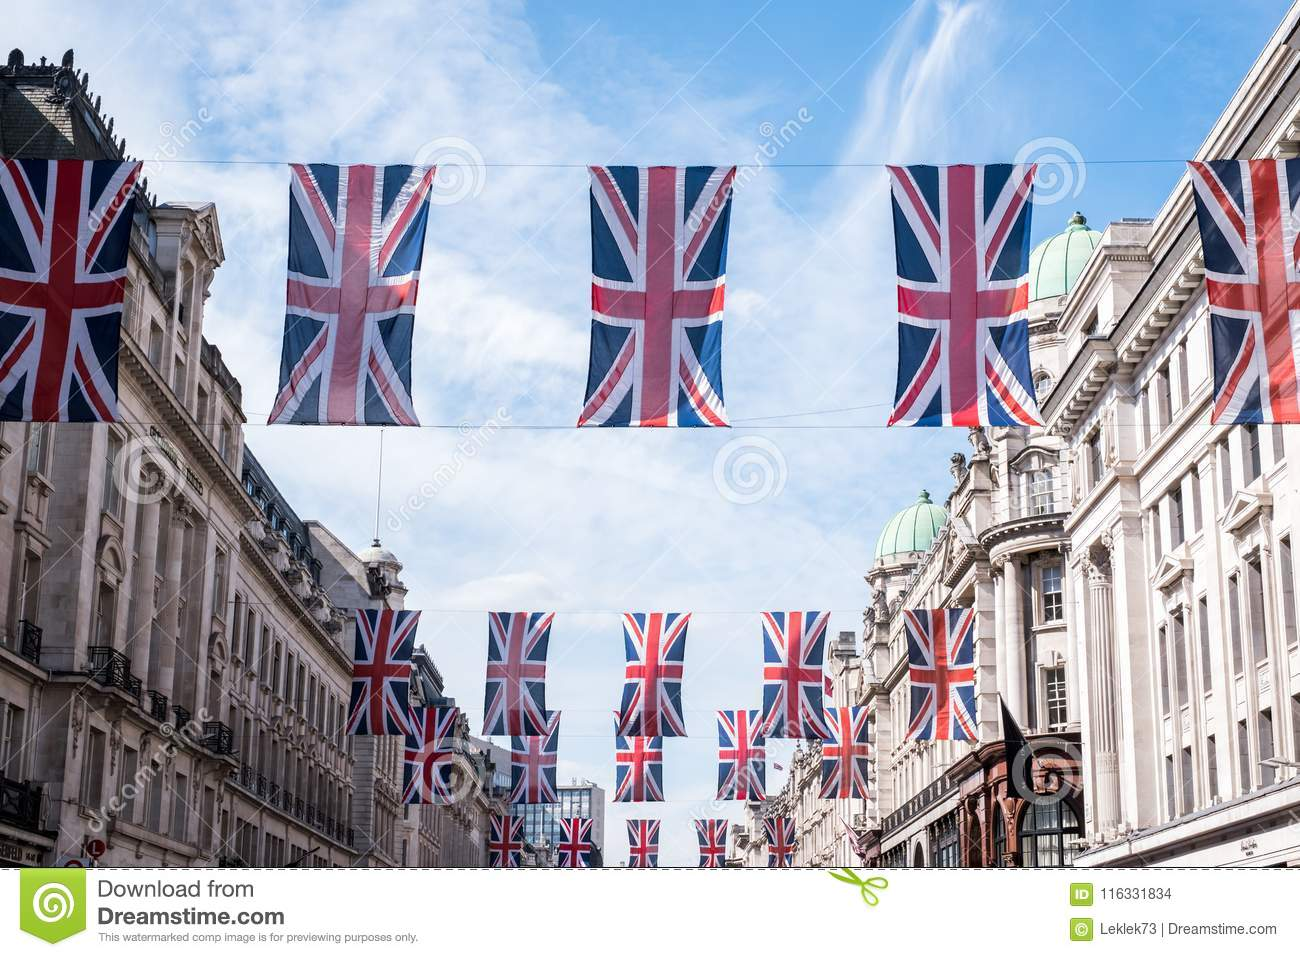 Close up of buildings on Regent Street London with row of British flags to celebrate the wedding of Prince Harry to Meghan Markle